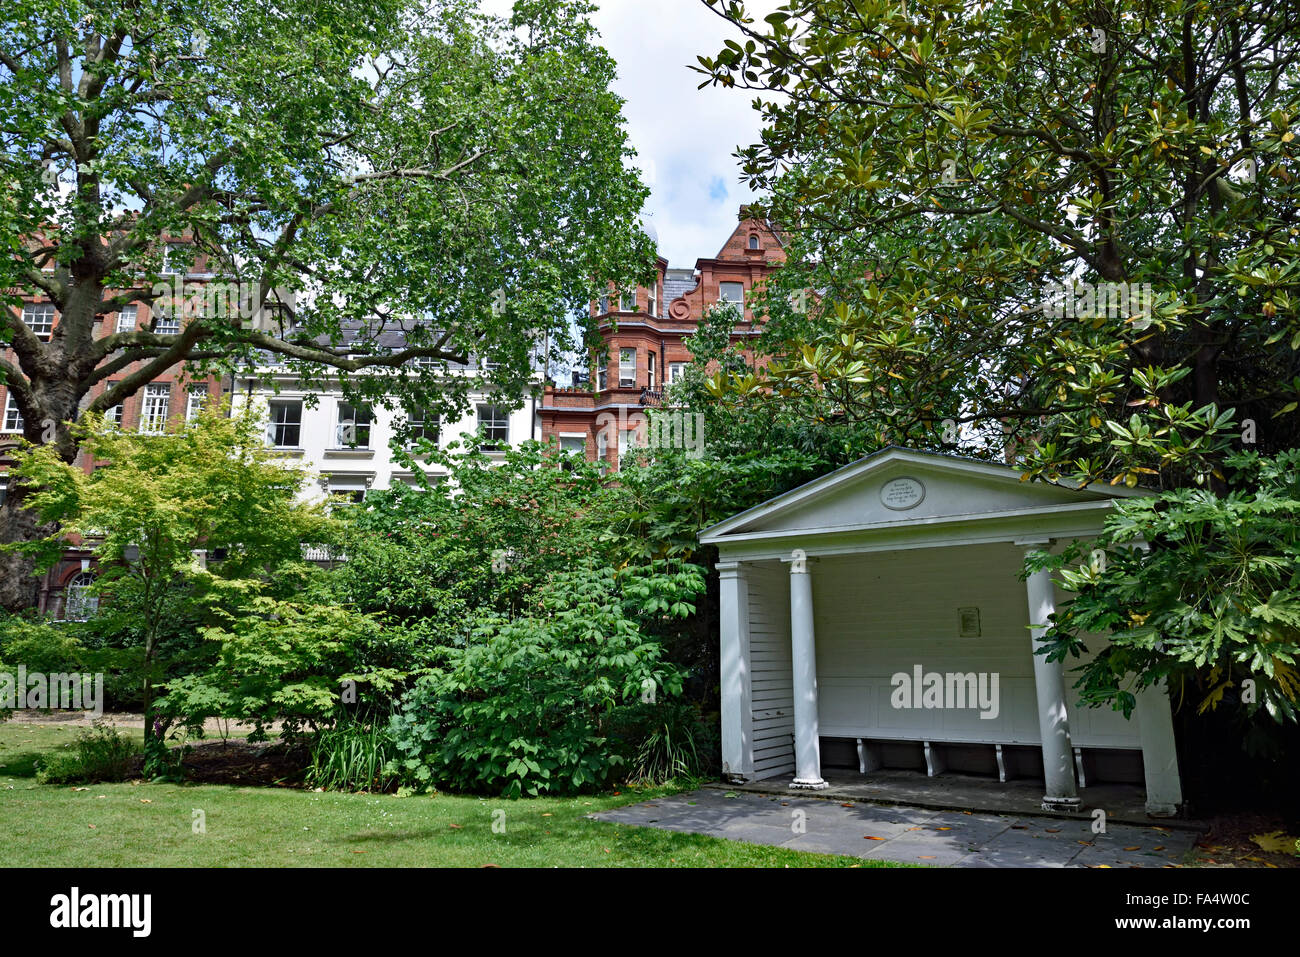 Kensington Square, Royal Borough of Kensington and Chelsea, W8, London England Britain UK - Stock Image